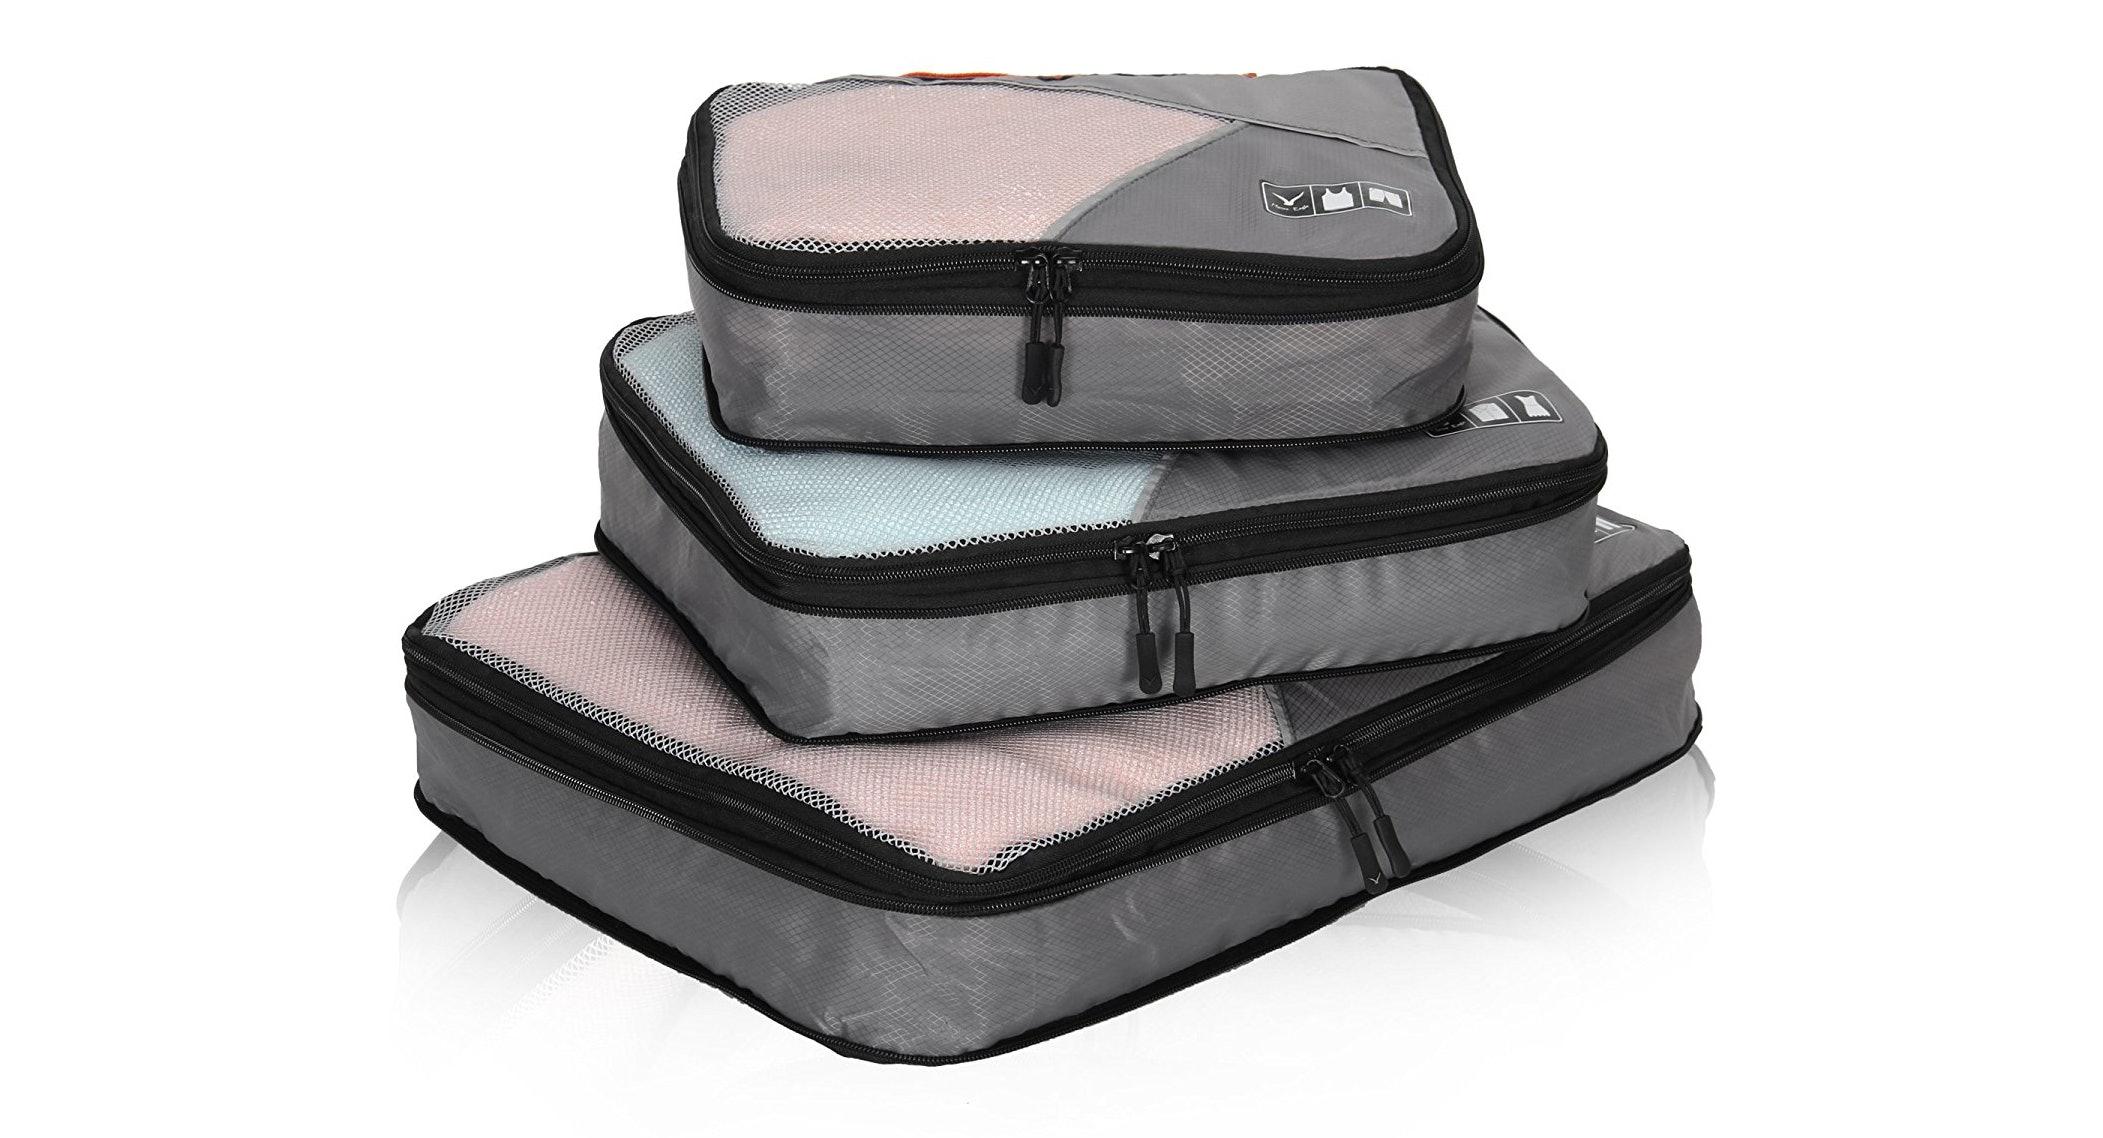 becb15c2fe2e The 5 Best Packing Cubes For Backpacking